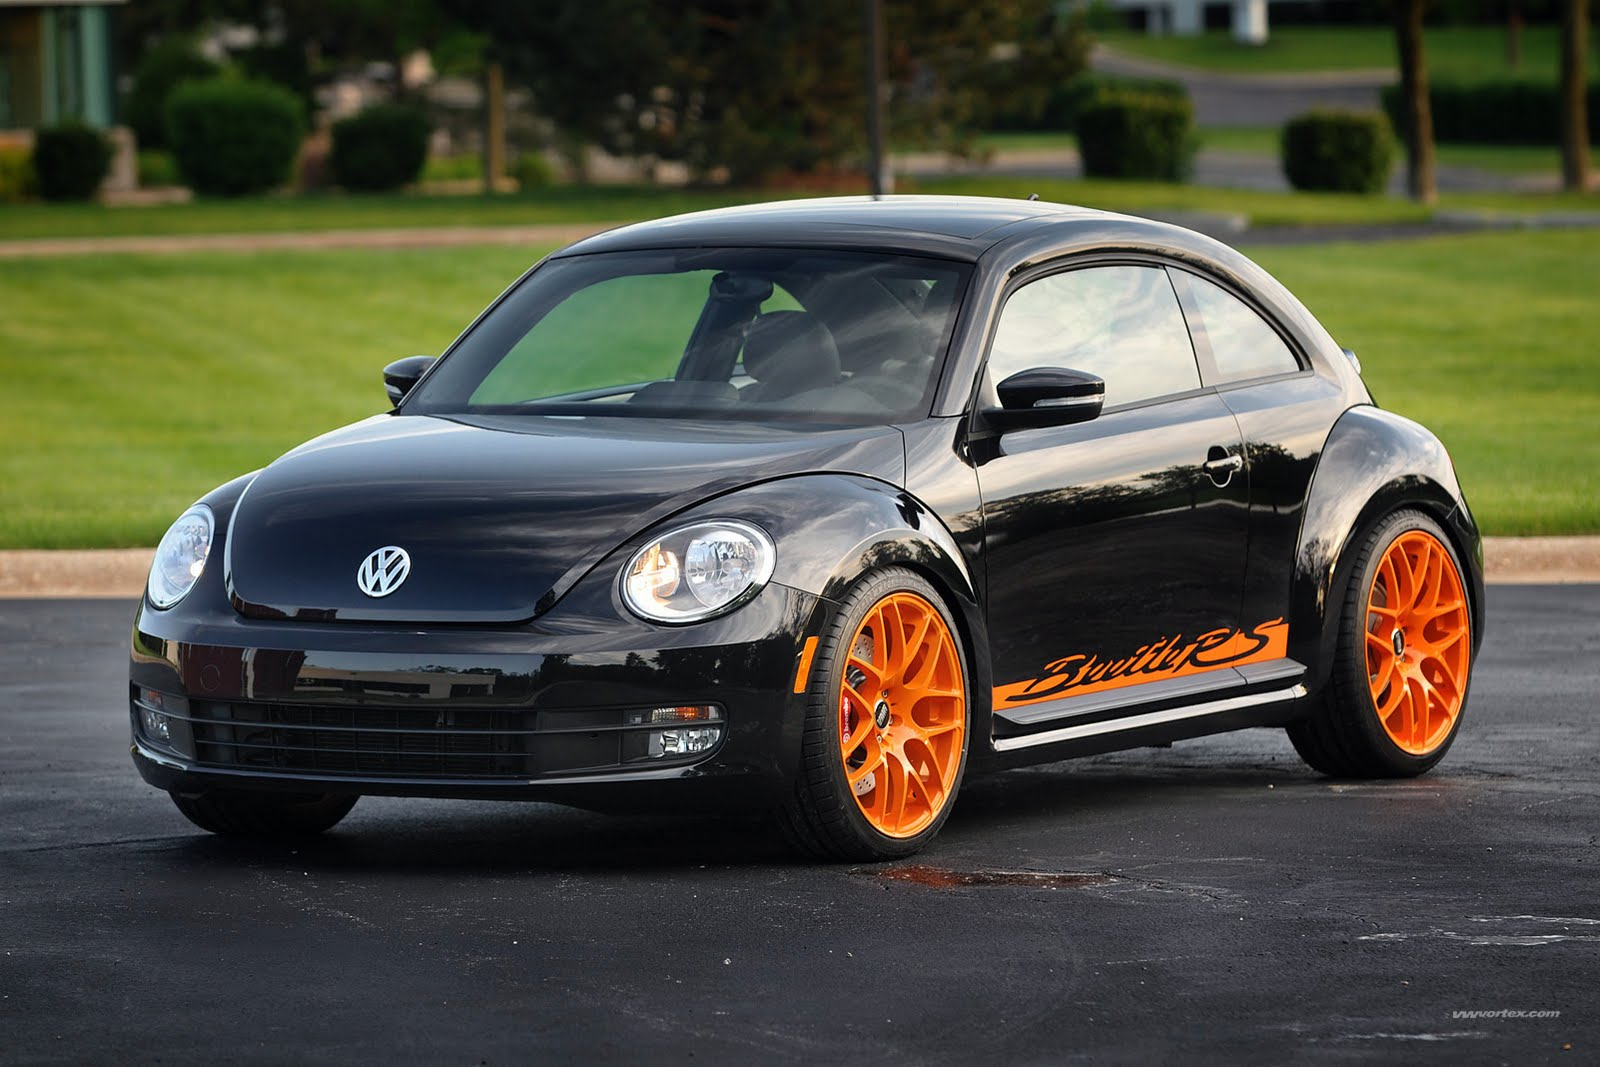 Meet the First Modified 2012 Volkswagen Beetle Inspired by the Porsche 911